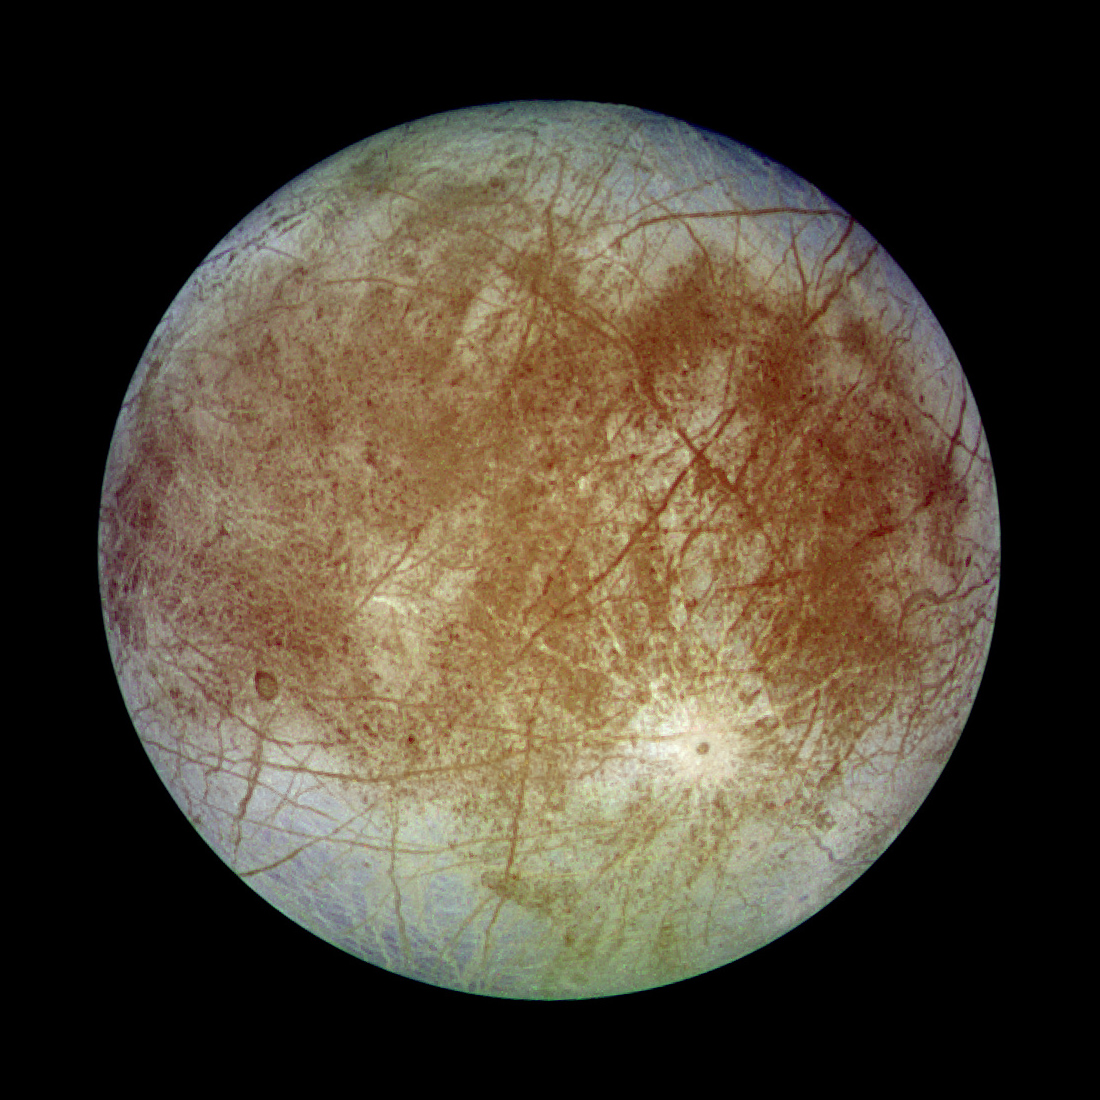 It's hoped Jupiter's moon Europa may contain sign of extraterrestrial life